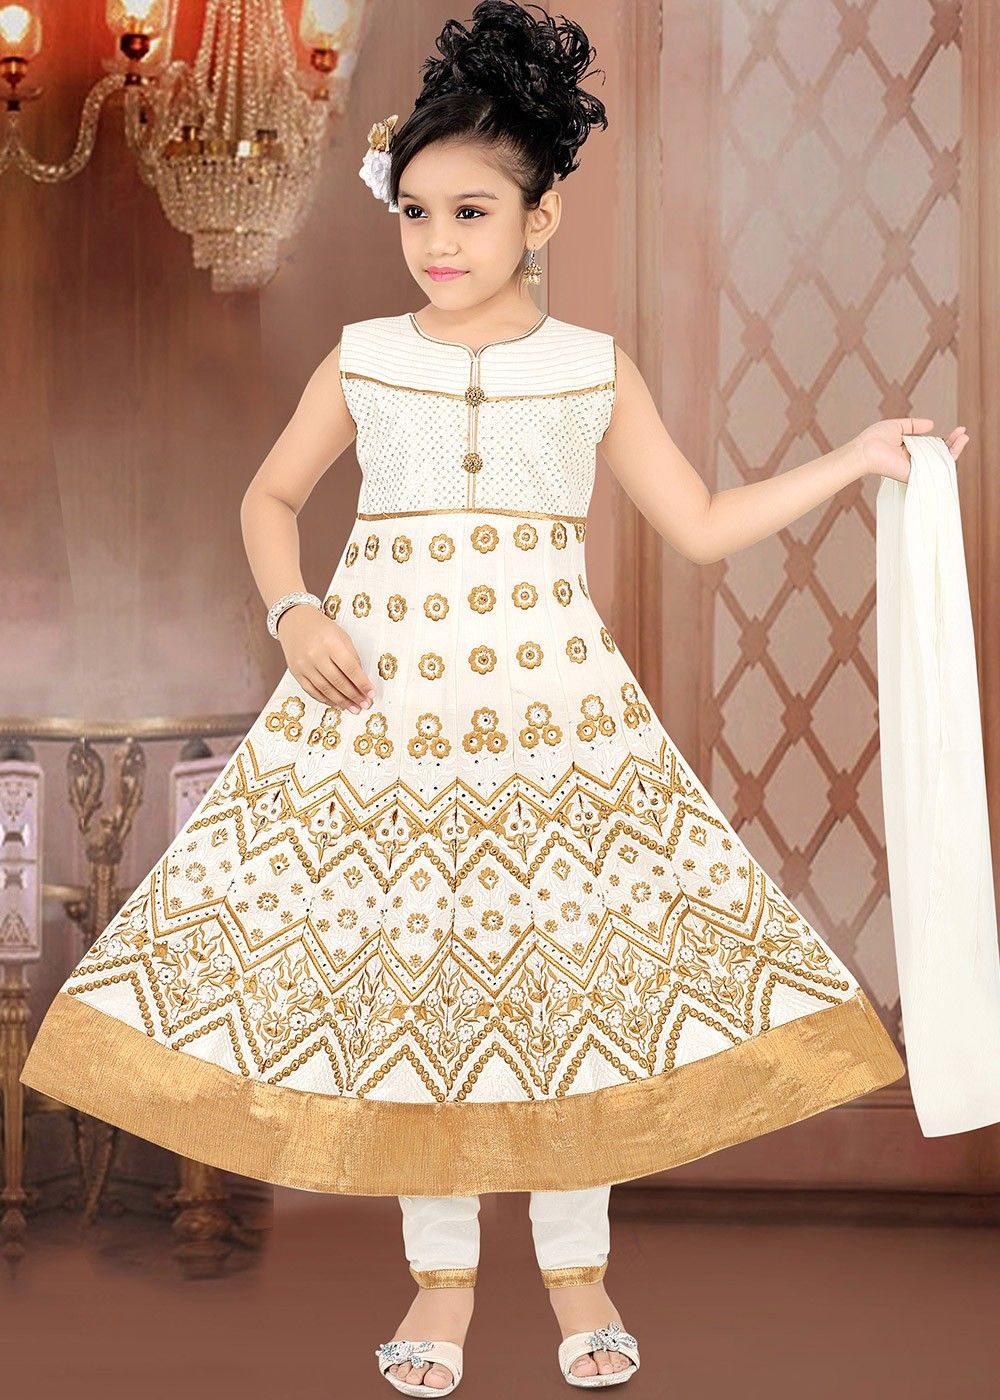 489c766619 #salwarkameez #CottonSalwar #offwhitesalwar #Embroideredsalwar  #womenfashion #dresses #ladiesfashion #fashiontips #womenoutfits  #ethnicfashion ...